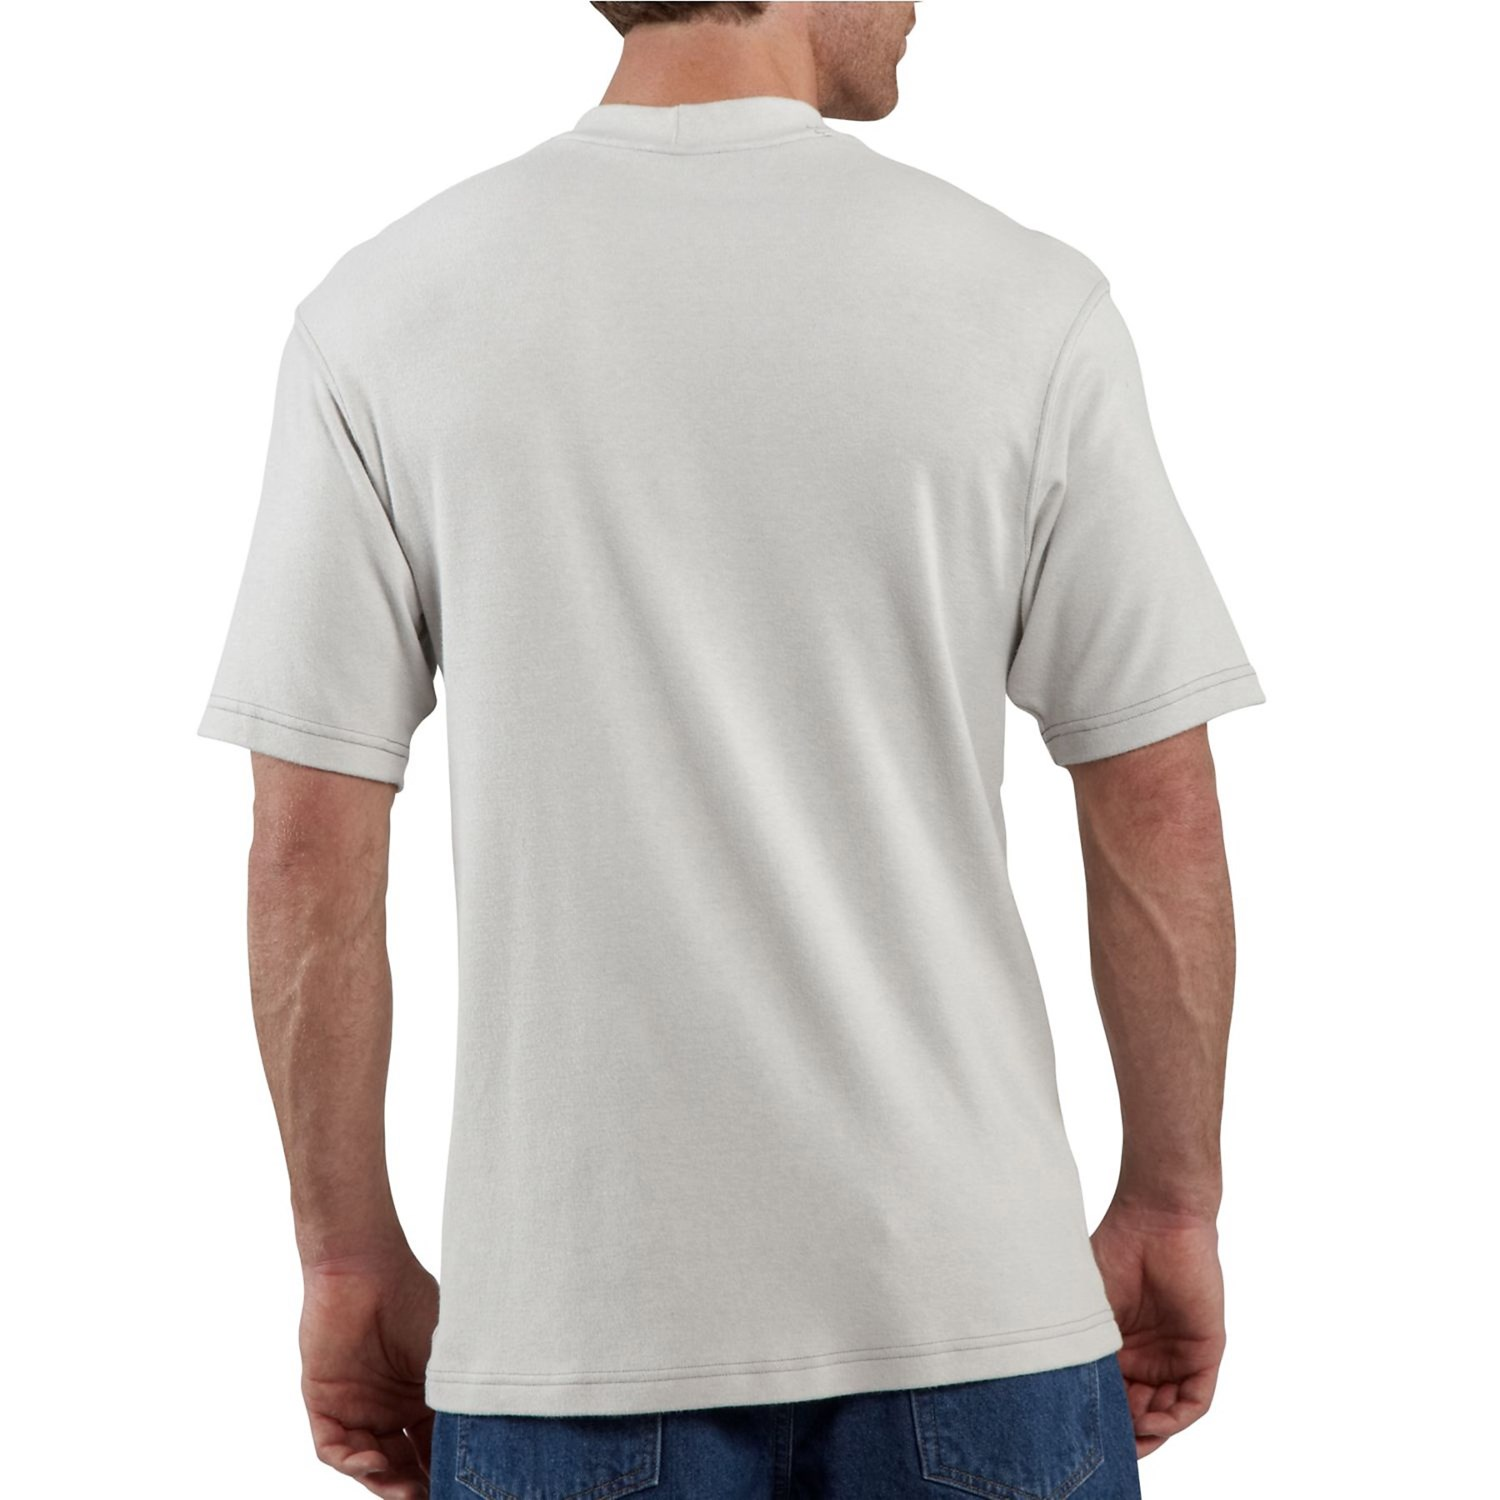 Carhartt fr flame resistant t shirt for big and tall men for T shirt for tall man